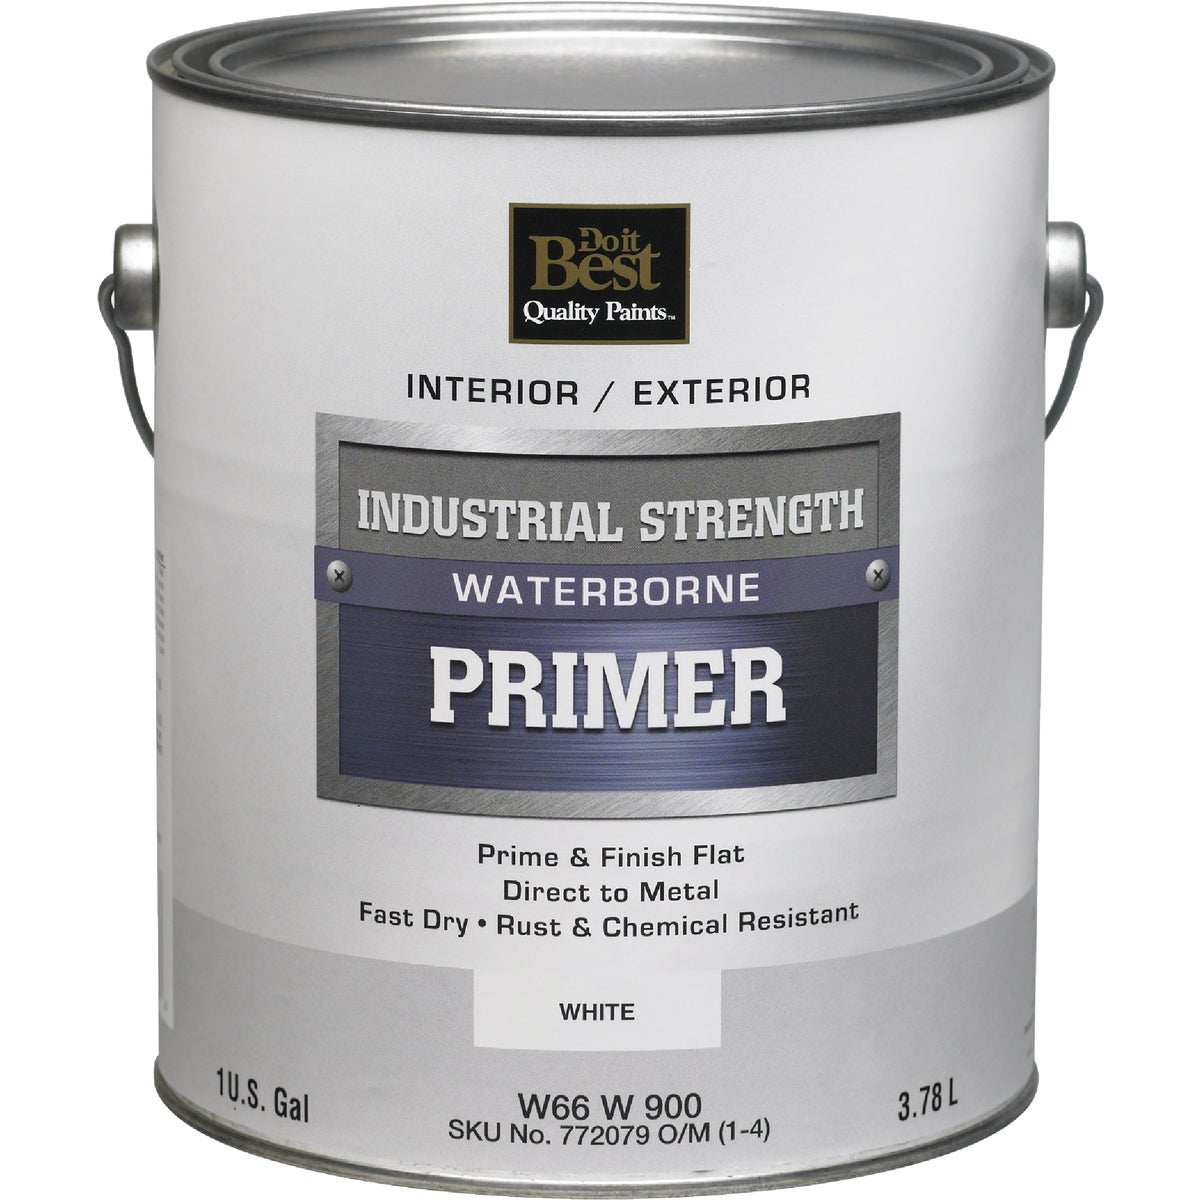 INT/EXT WHT LATEX PRIMER - W66W00900-16 by Do it Best